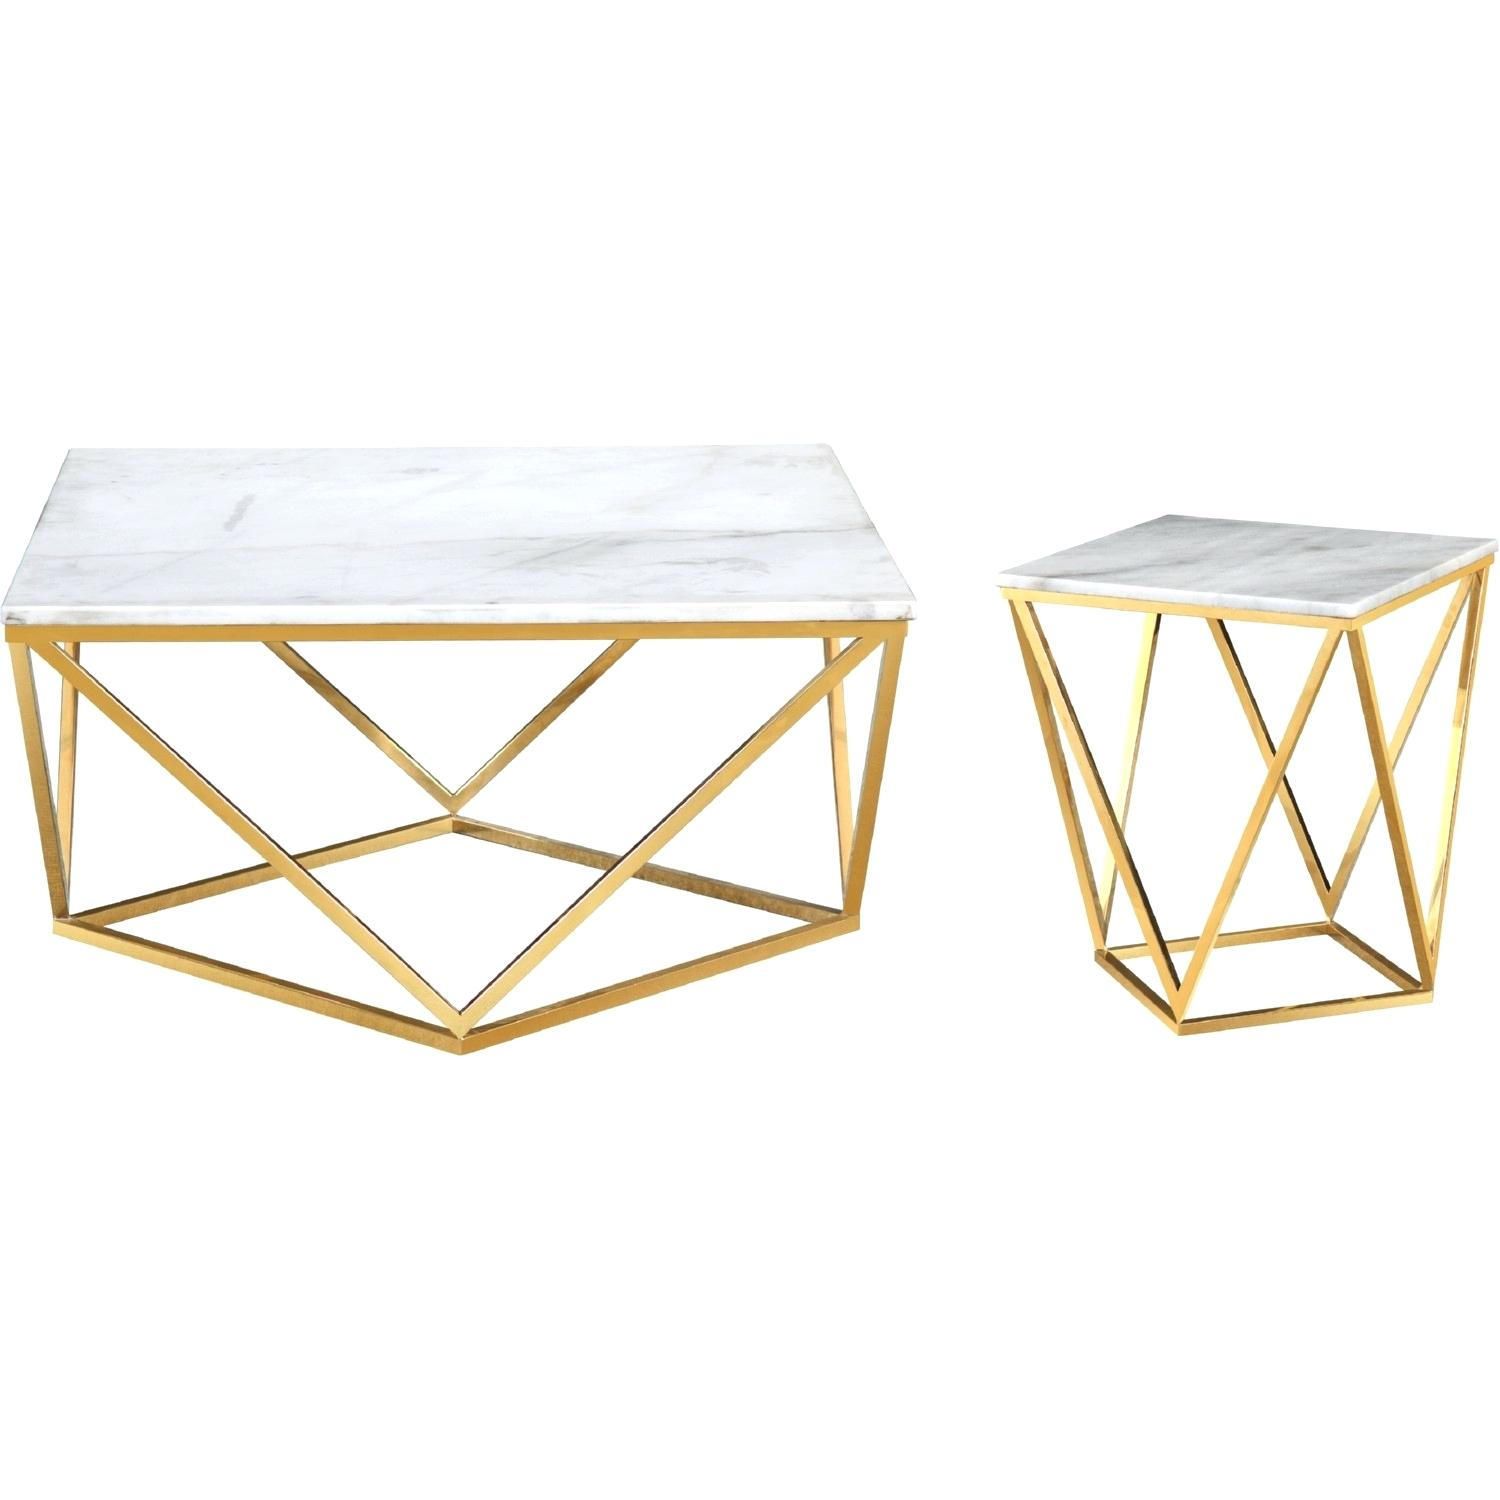 gold accent table nate berkus round with marble top target foil storage cube coffee small dining leaf grill master parts bunk beds diy frog drum linen placemats and napkins metal